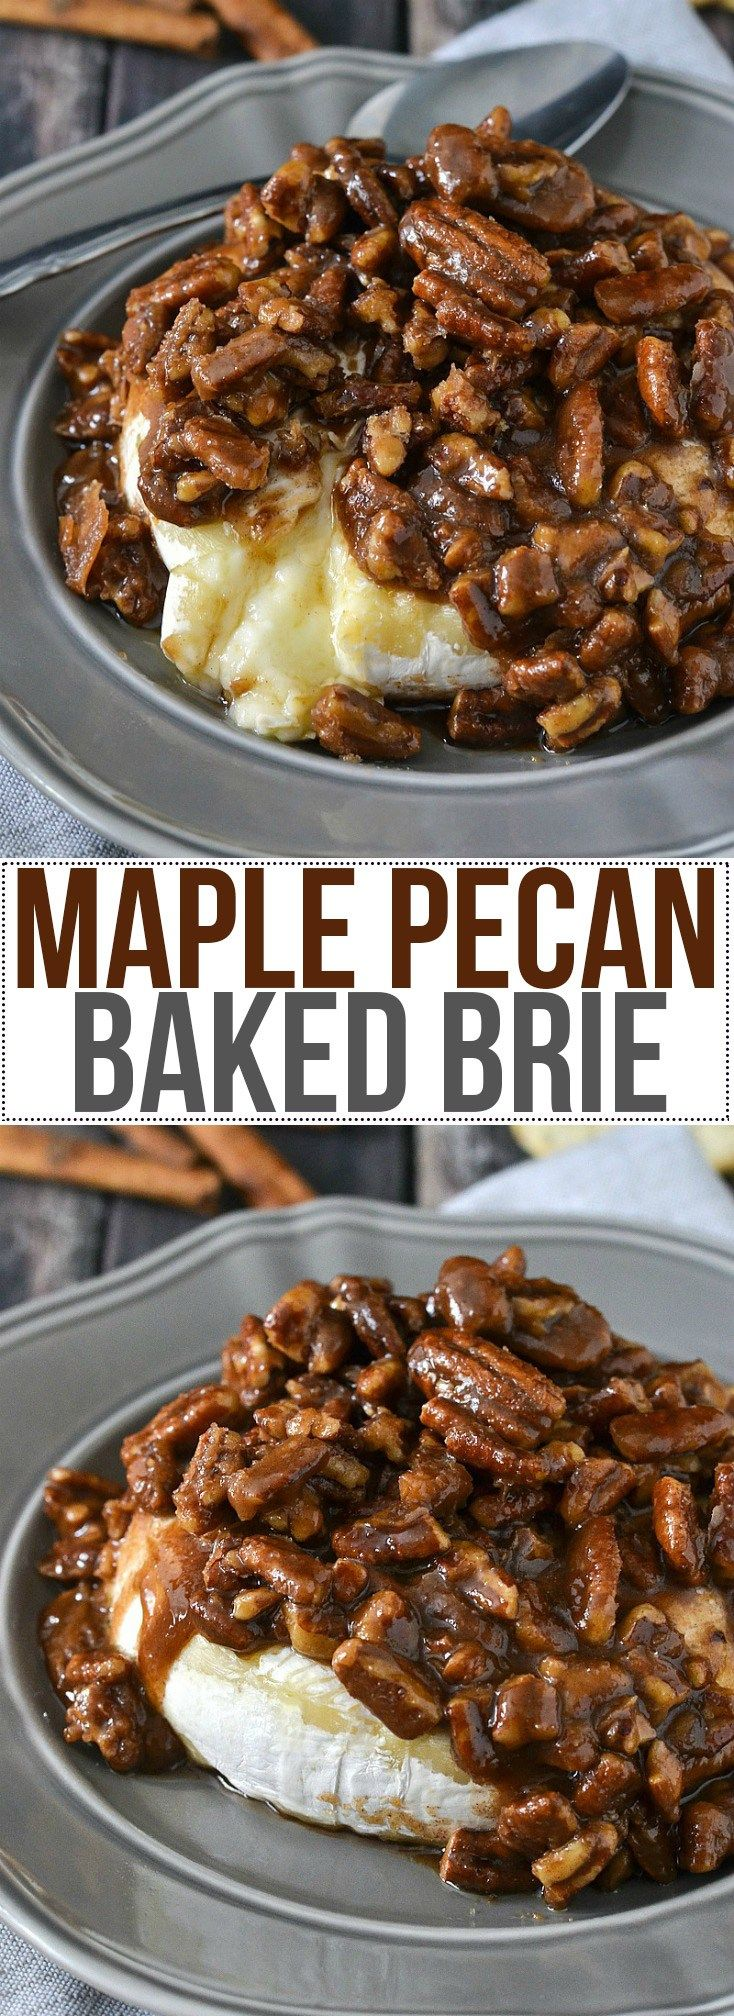 Maple Pecan Baked Brie - Mother Thyme